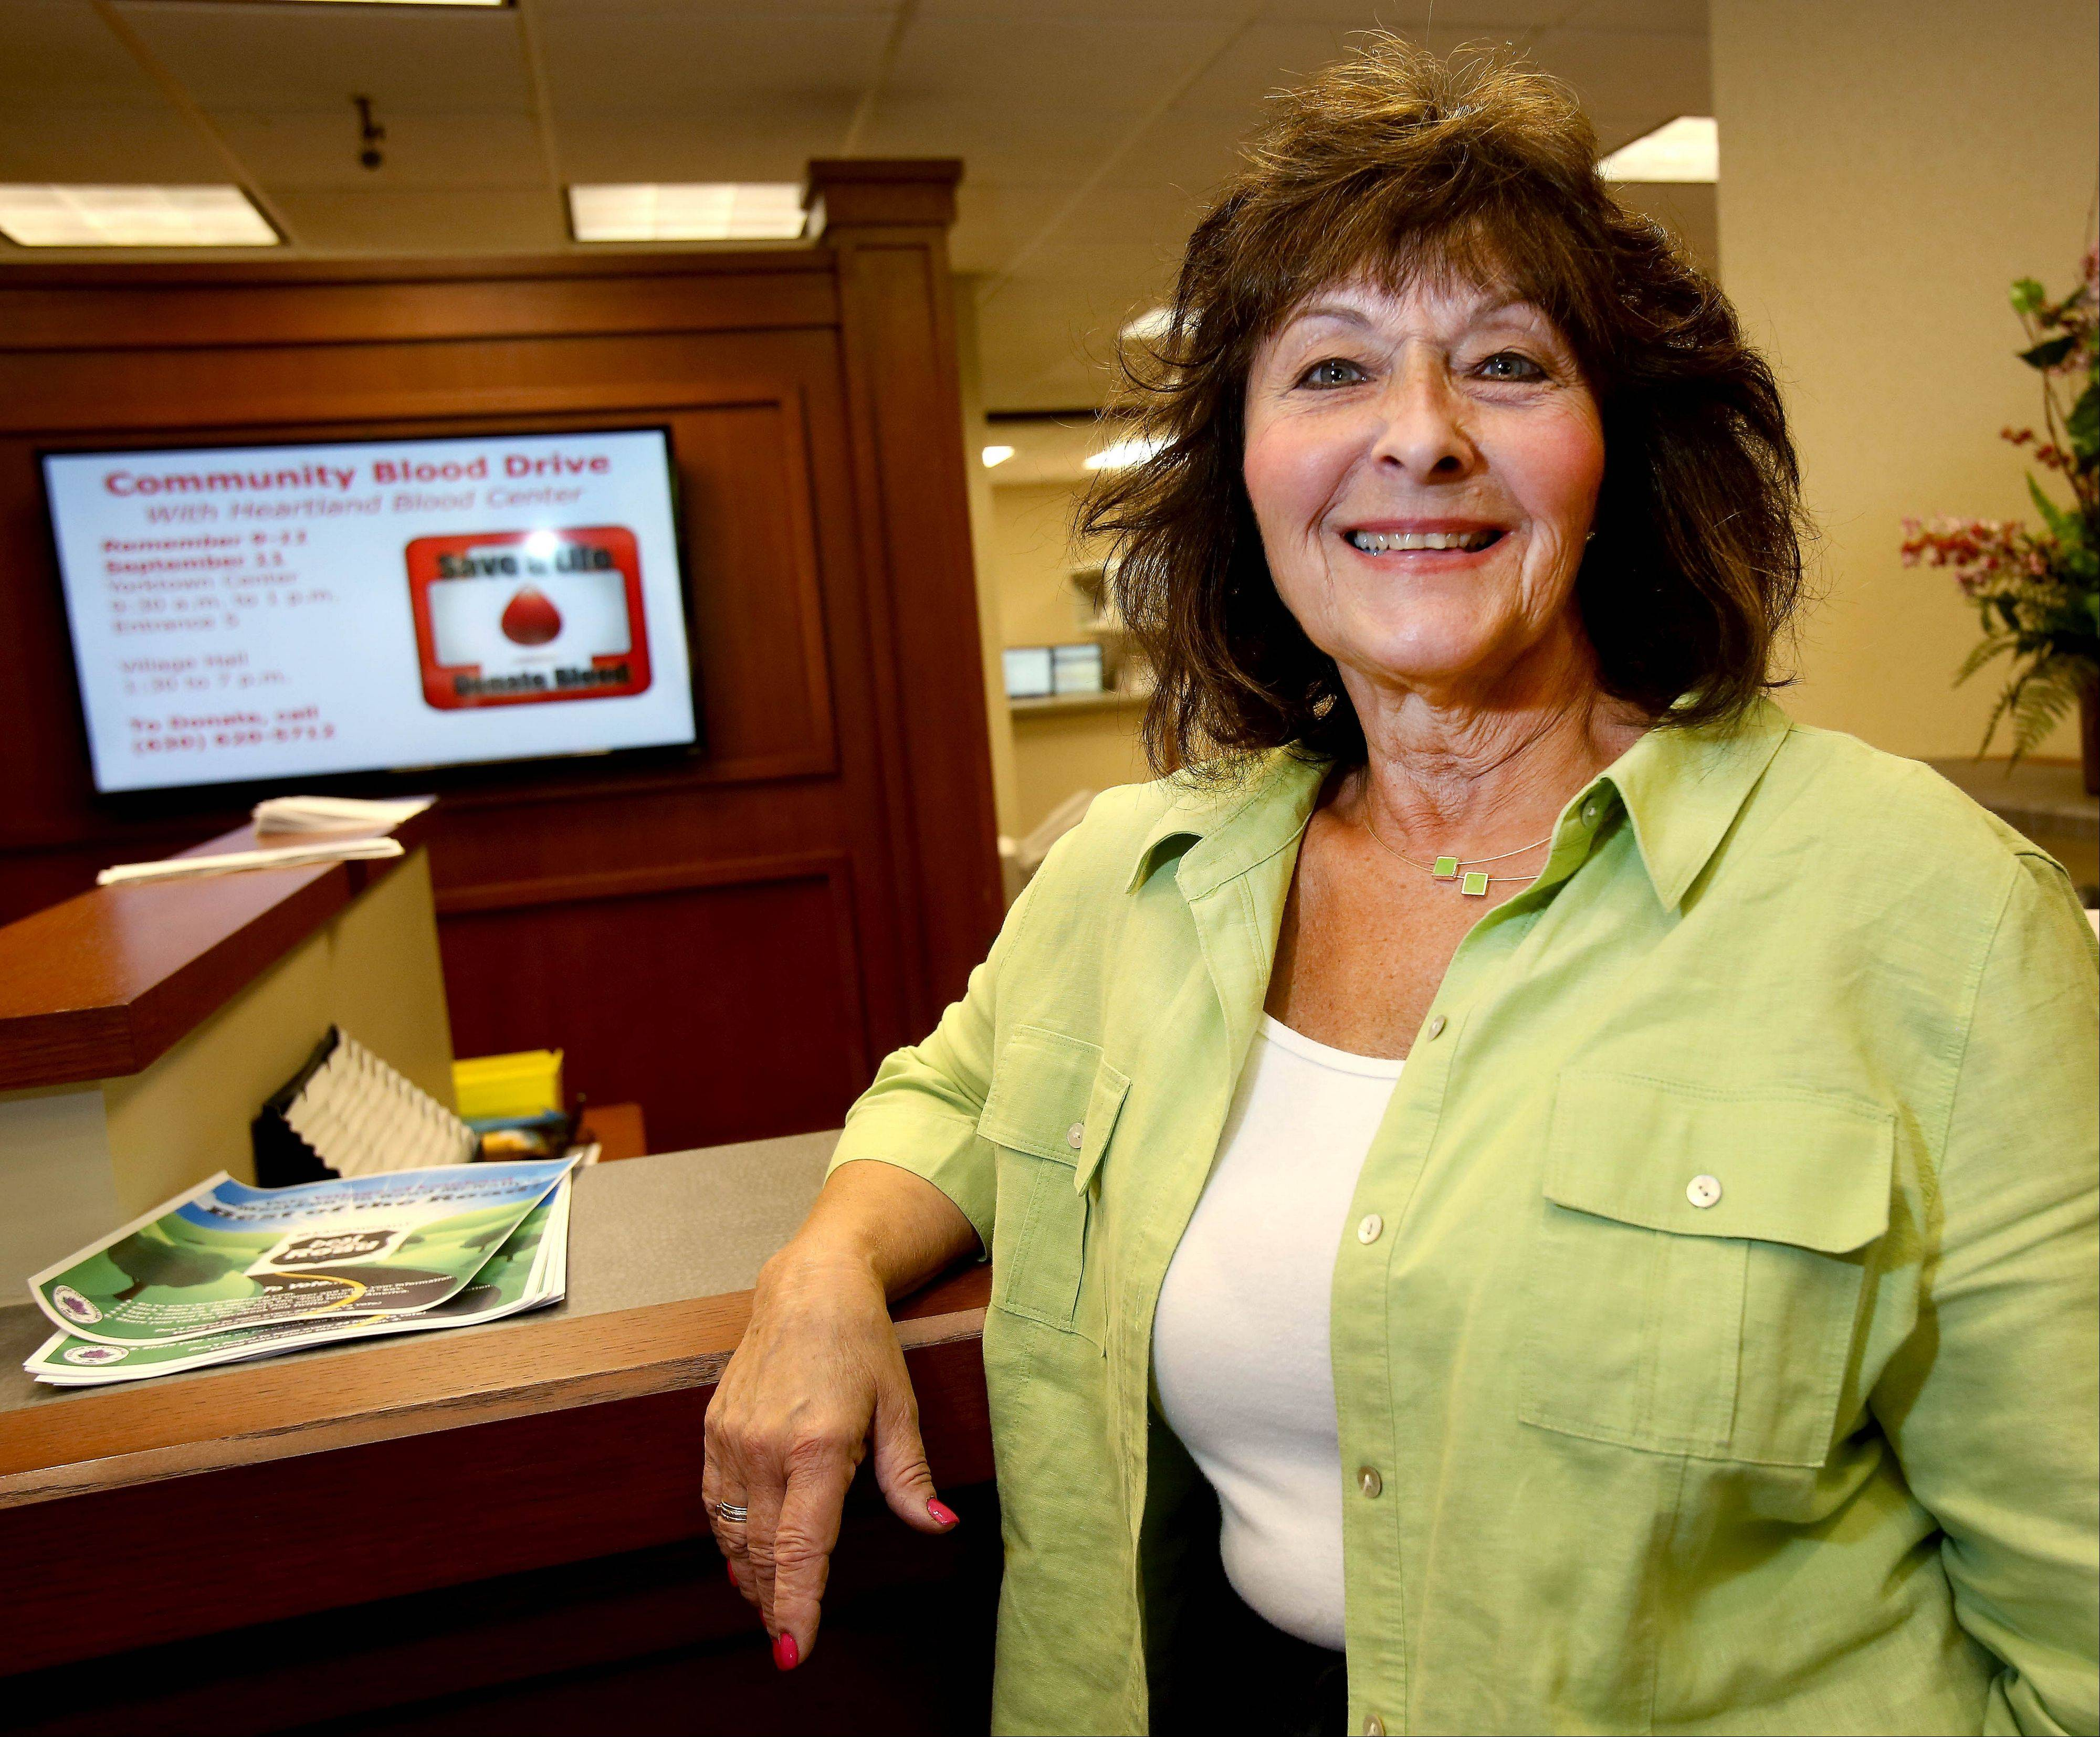 A 47-year employee of the village of Lombard, Carol Bauer has coordinated its blood drives for 20 years, during which time donations have grown from double to triple digits.